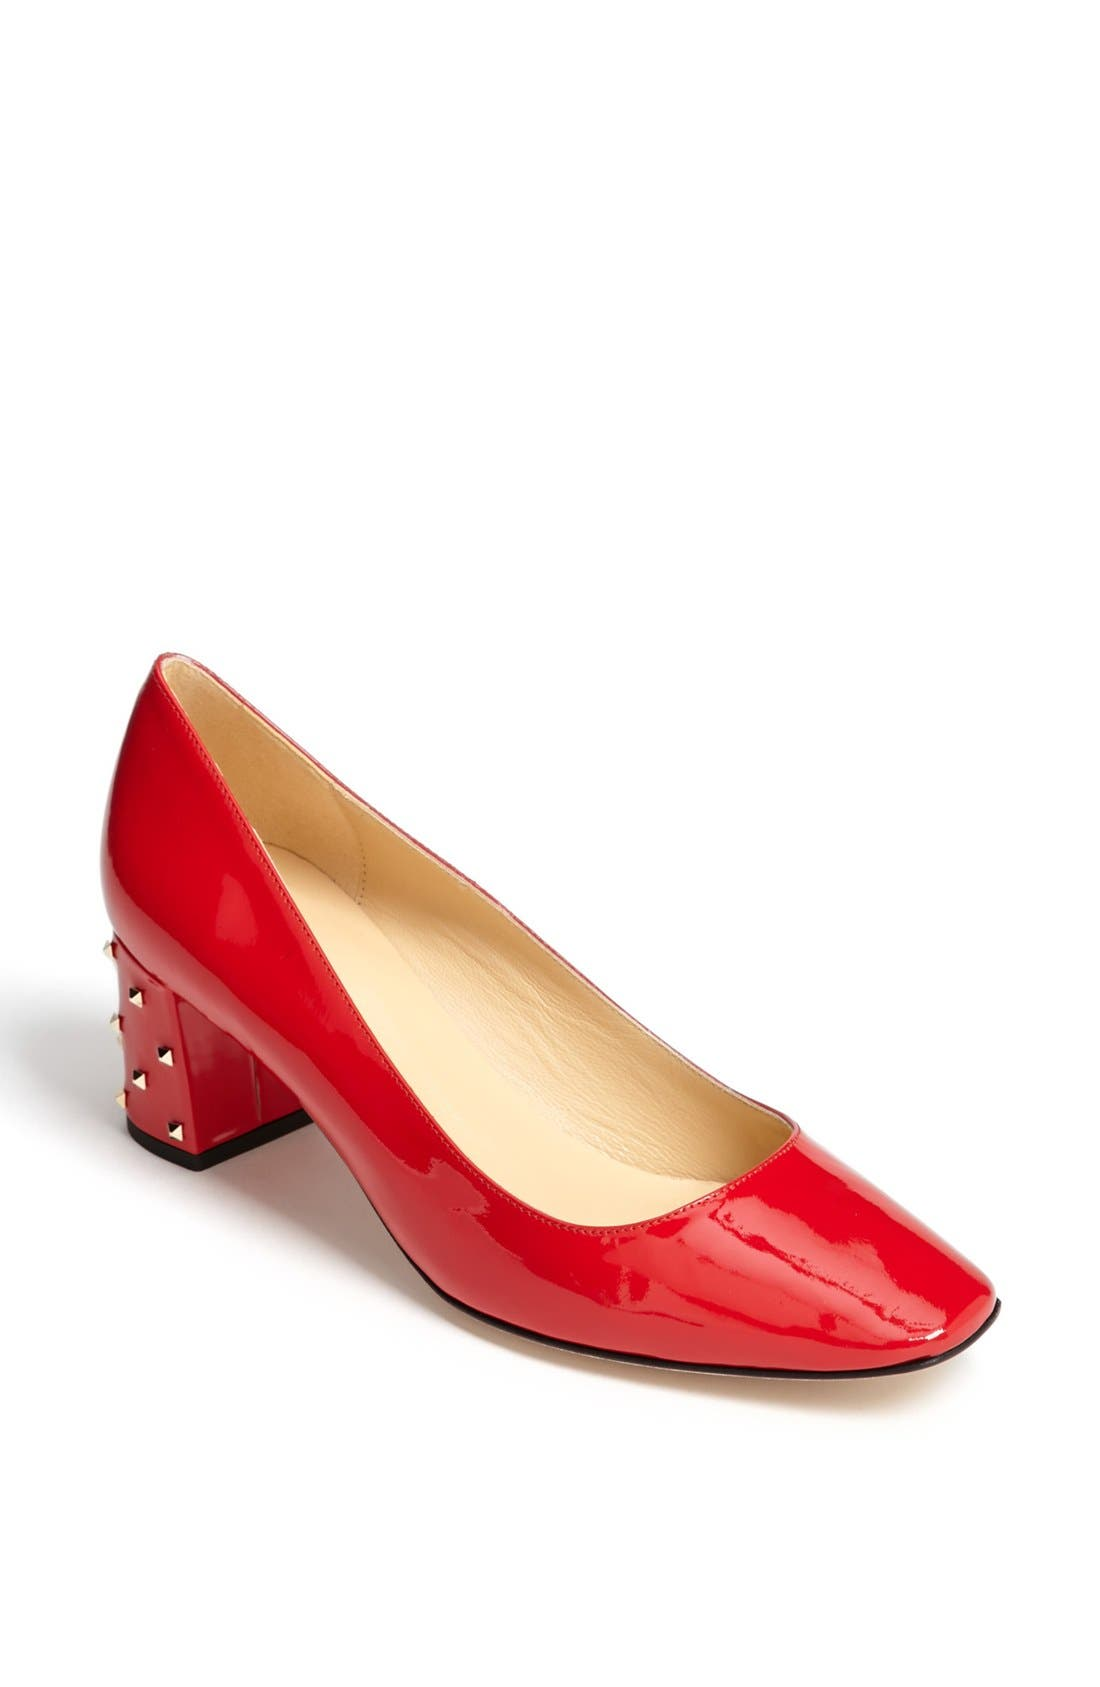 Main Image - kate spade new york 'derena' pump